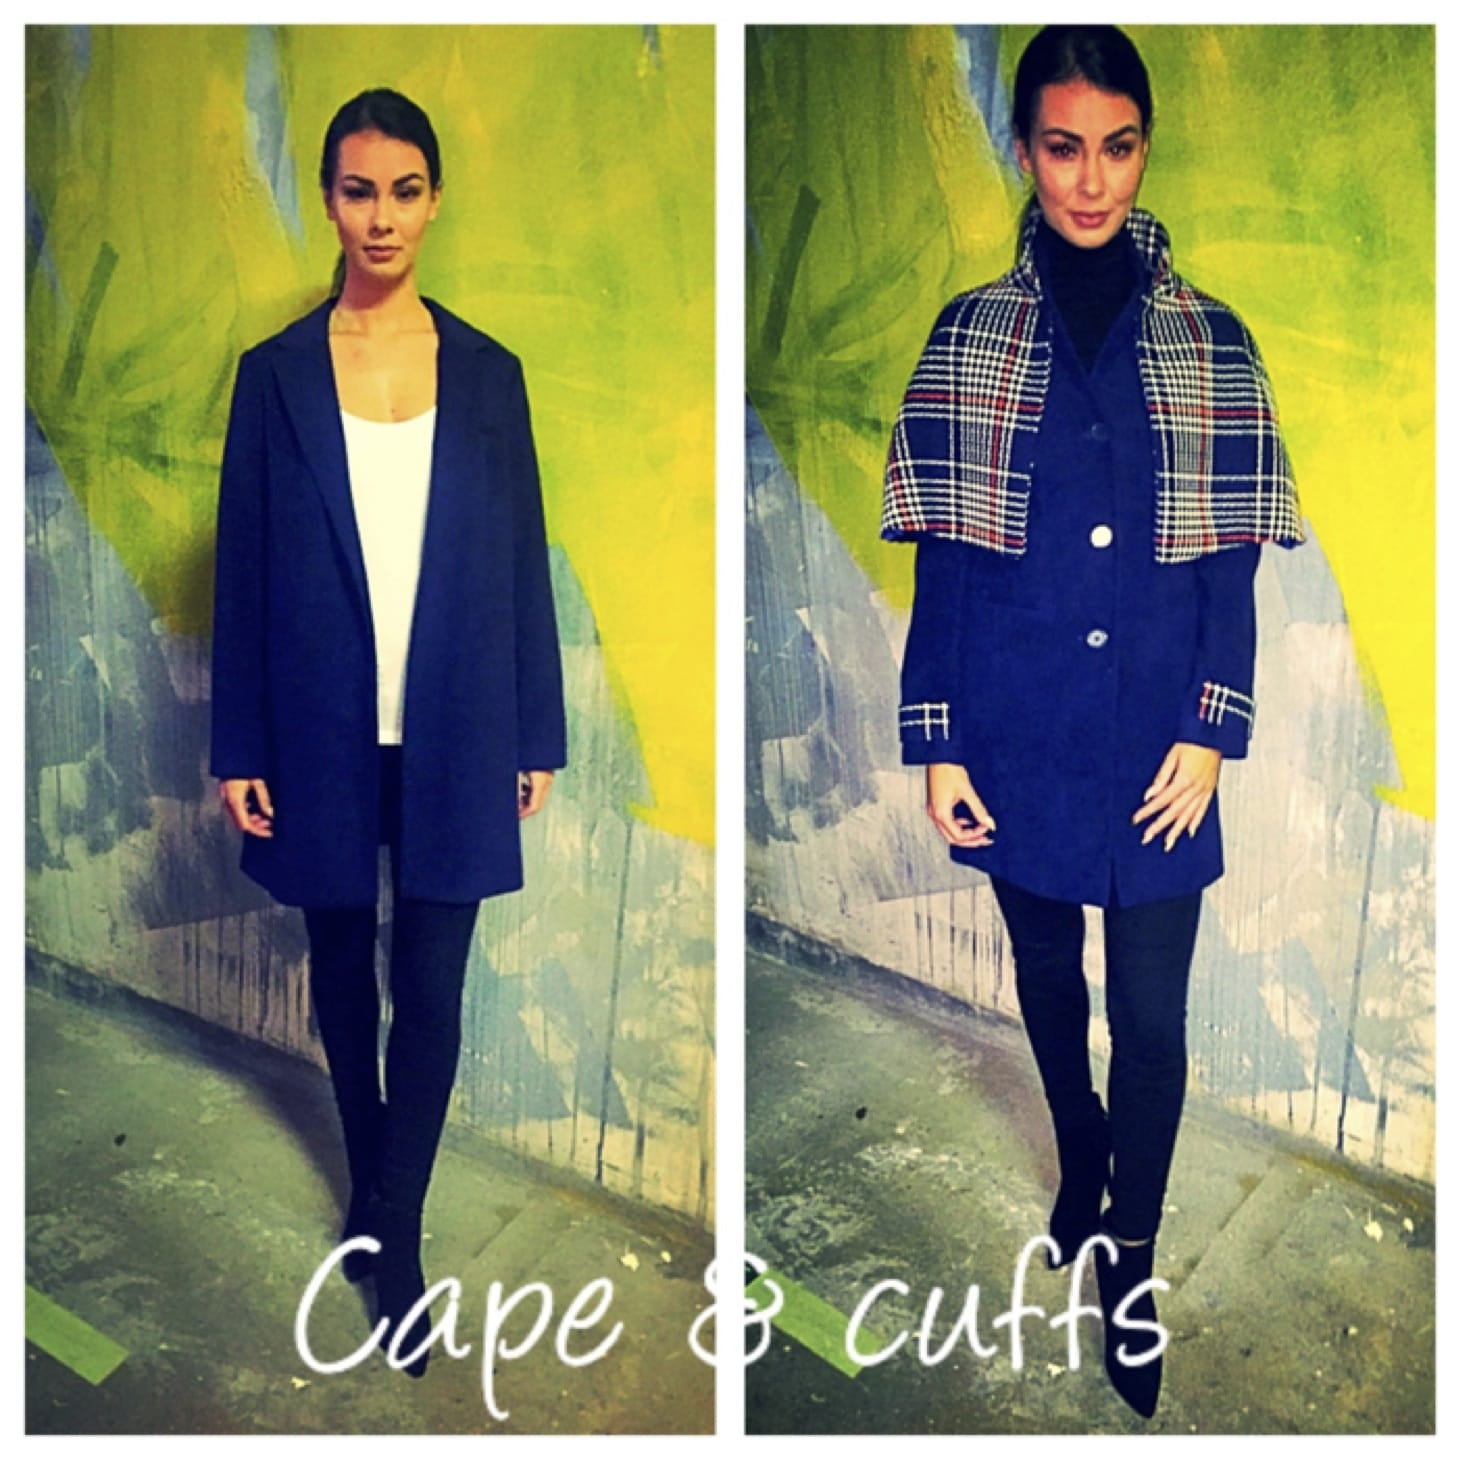 Oct 2016: The Cape Coat: Alterations by the Zip Yard